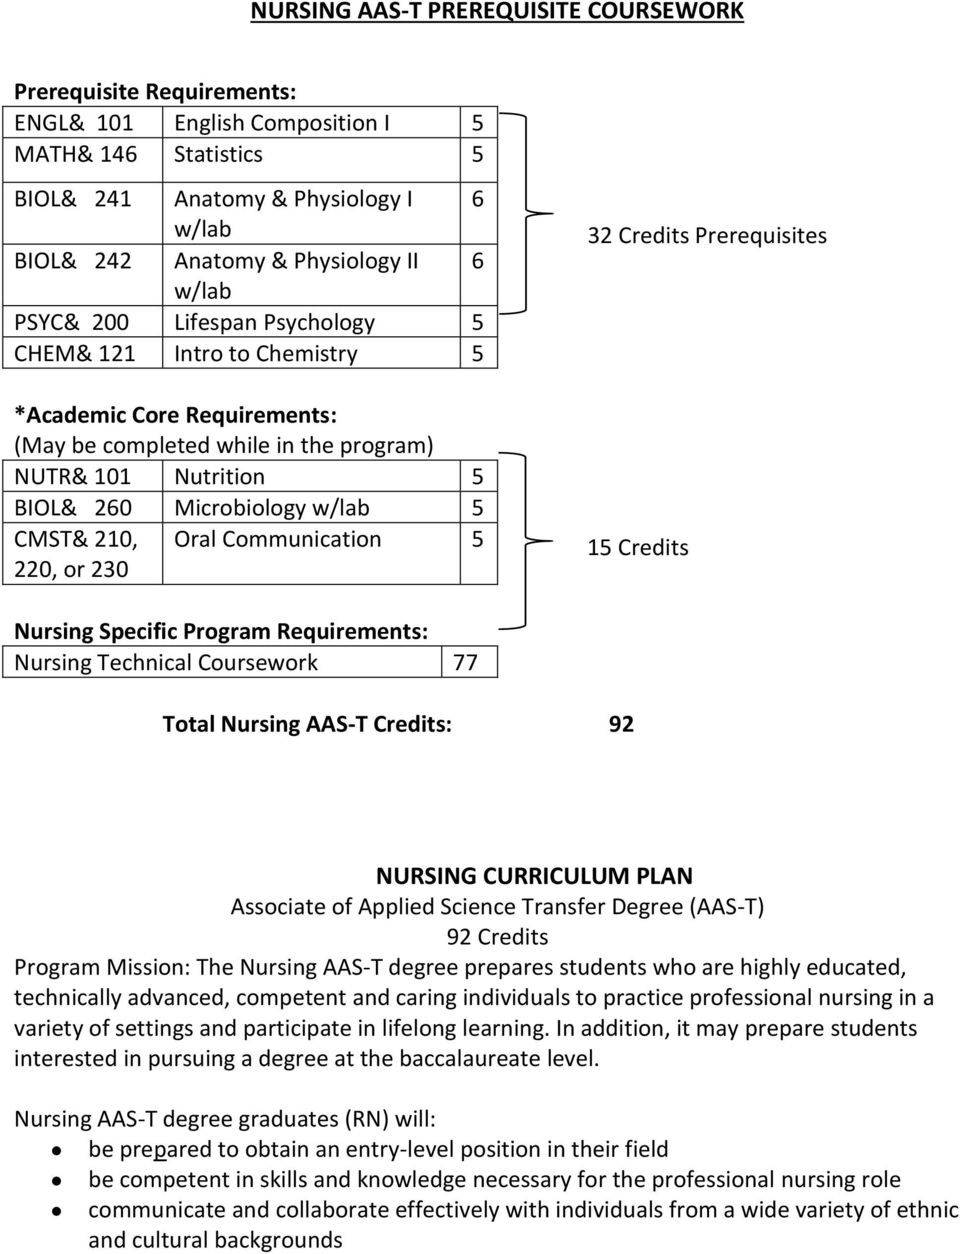 210, 220, or 230 Oral Communication 5 32 Credits Prerequisites 15 Credits Nursing Specific Program Requirements: Nursing Technical Coursework 77 Total Nursing AAS-T Credits: 92 NURSING CURRICULUM